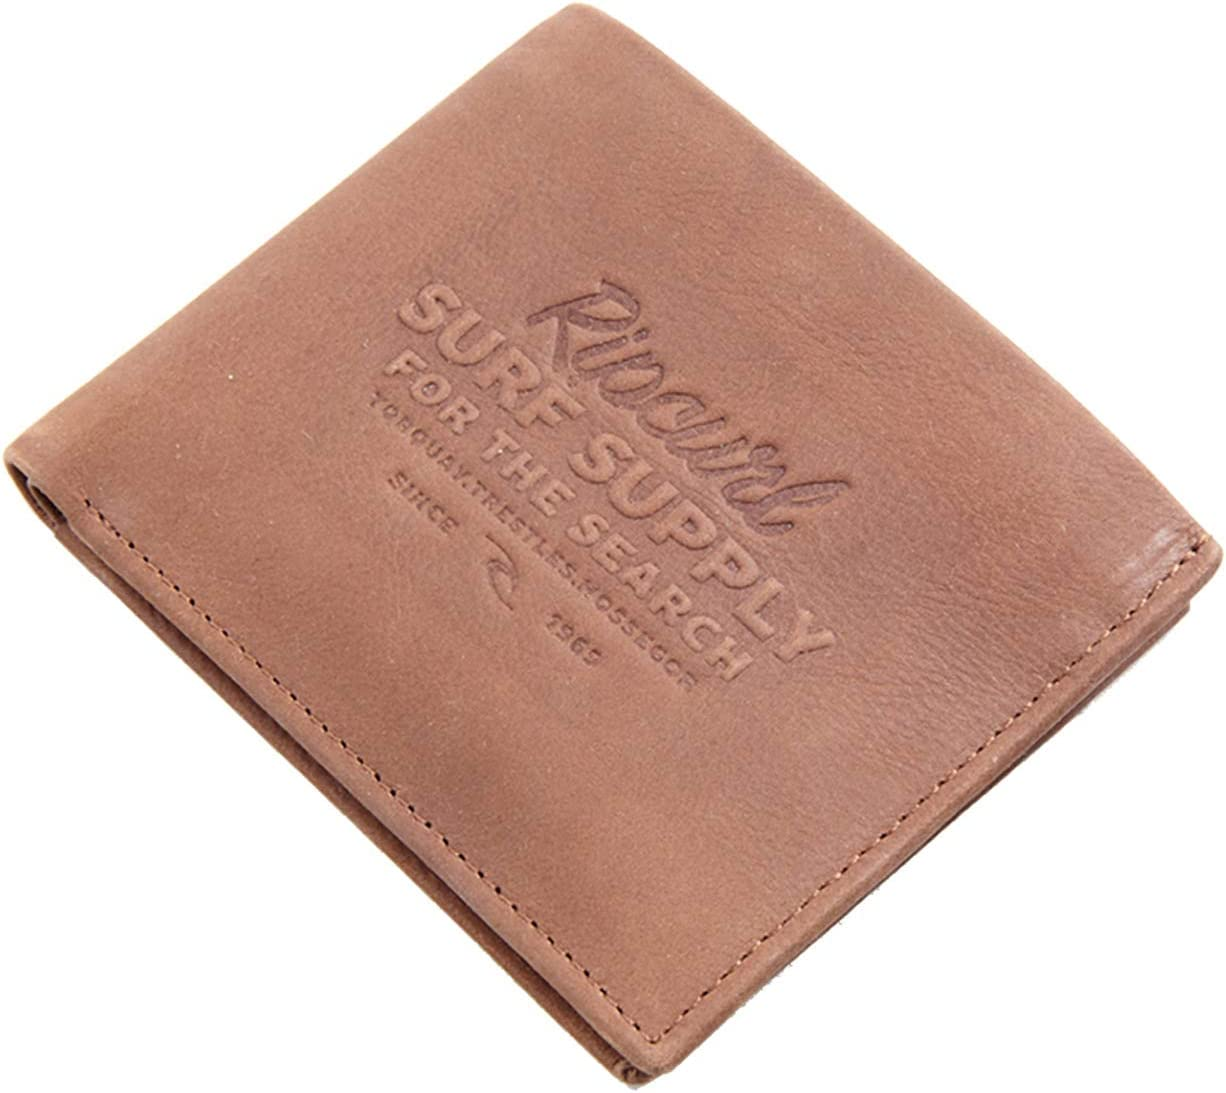 Rip Curl Surf Supply RFID 2 in 1 Leather Wallet in Brown